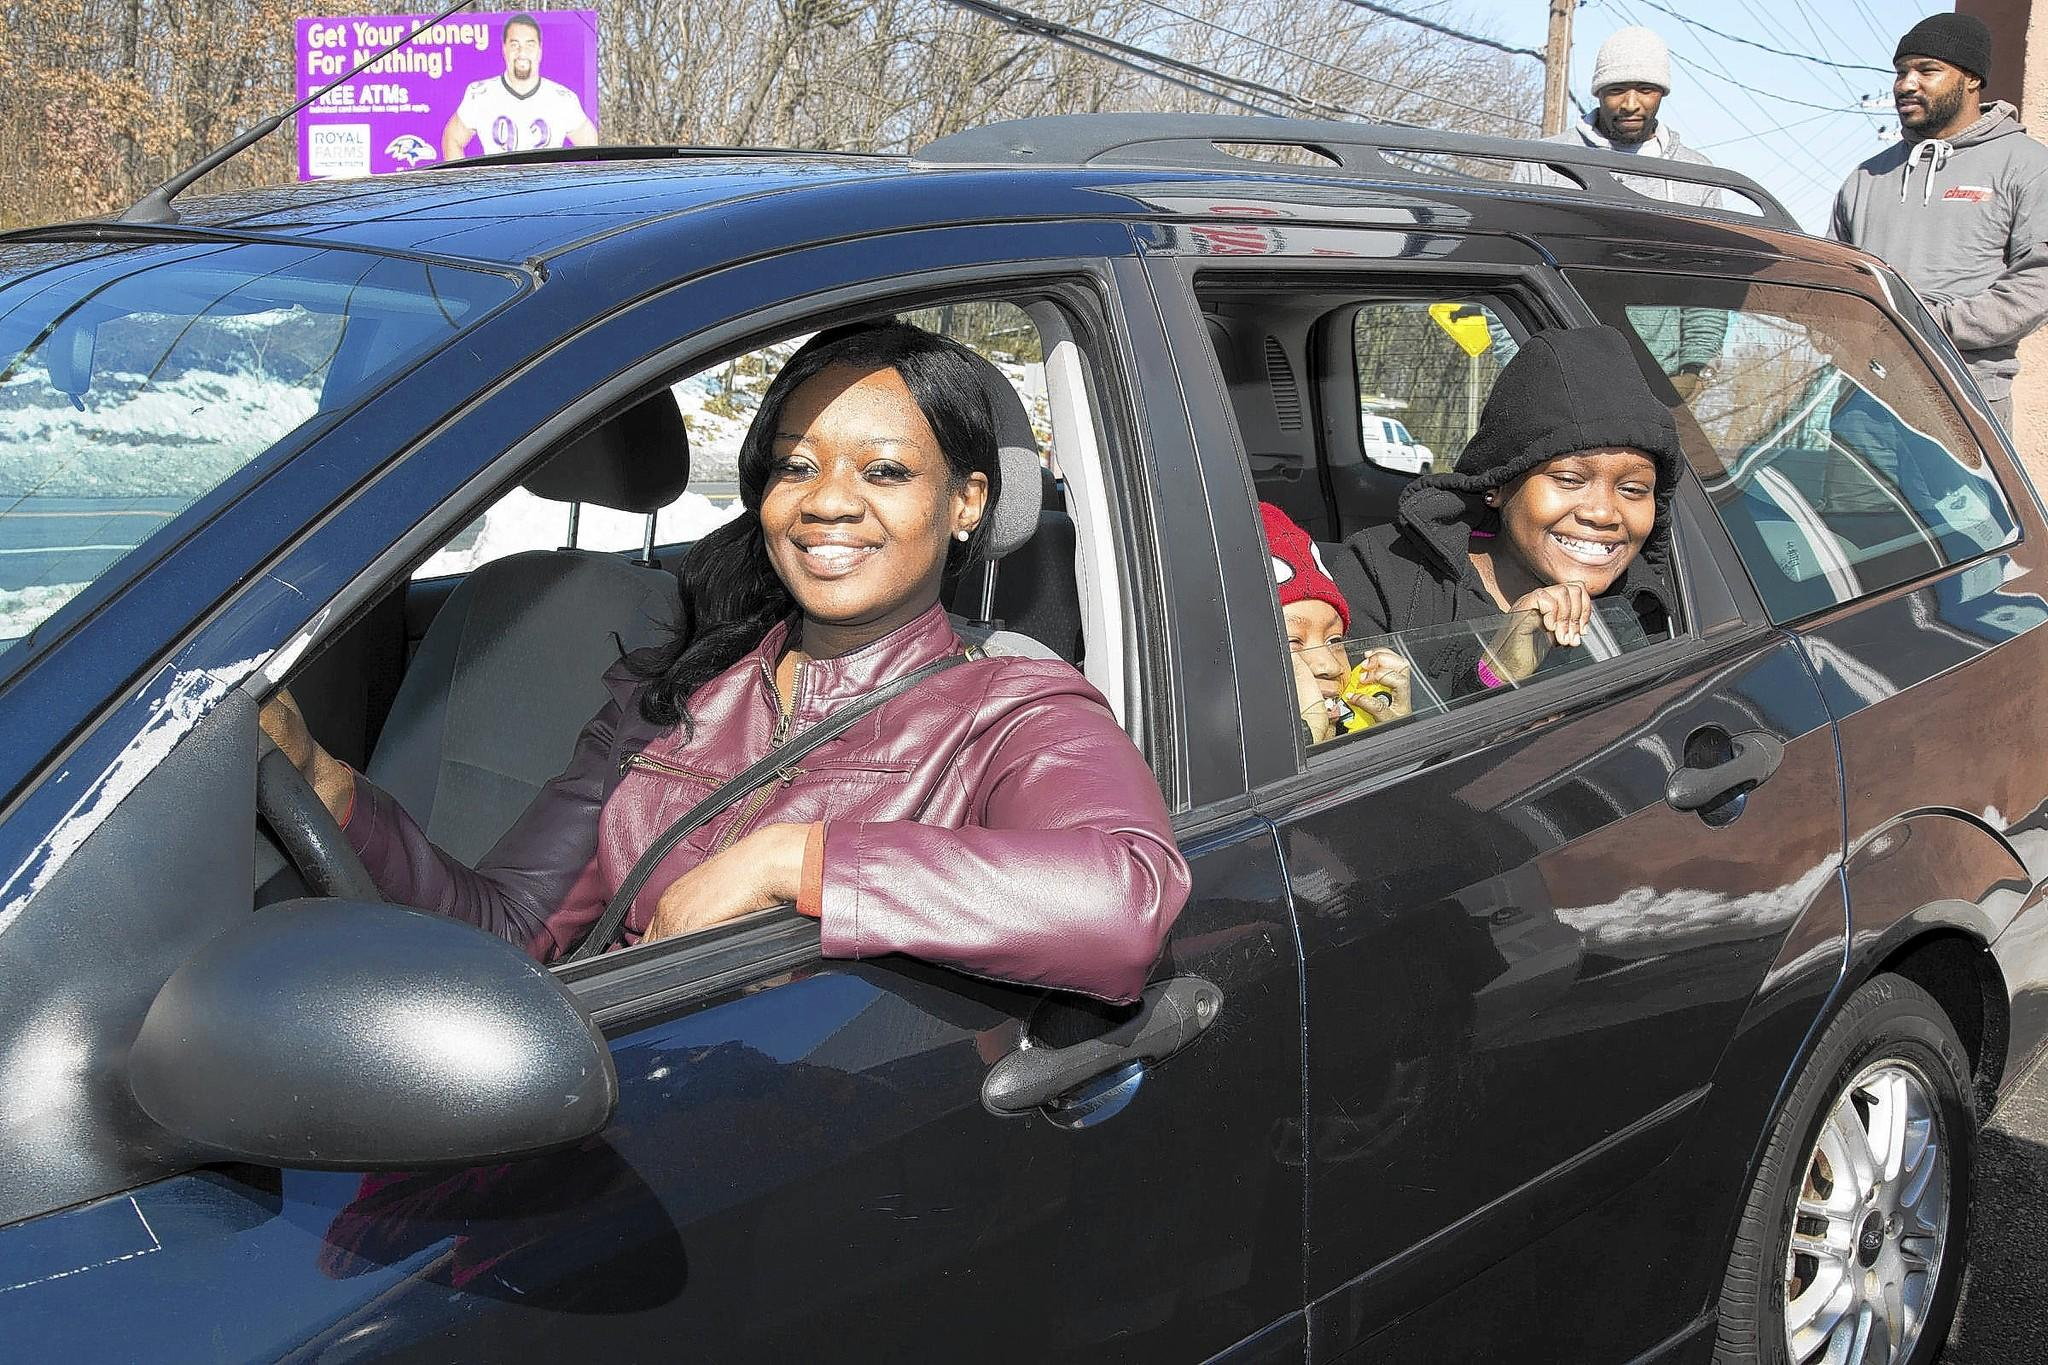 Vehicles for Change car recipient Krystal Parker and her family enjoy their new car.